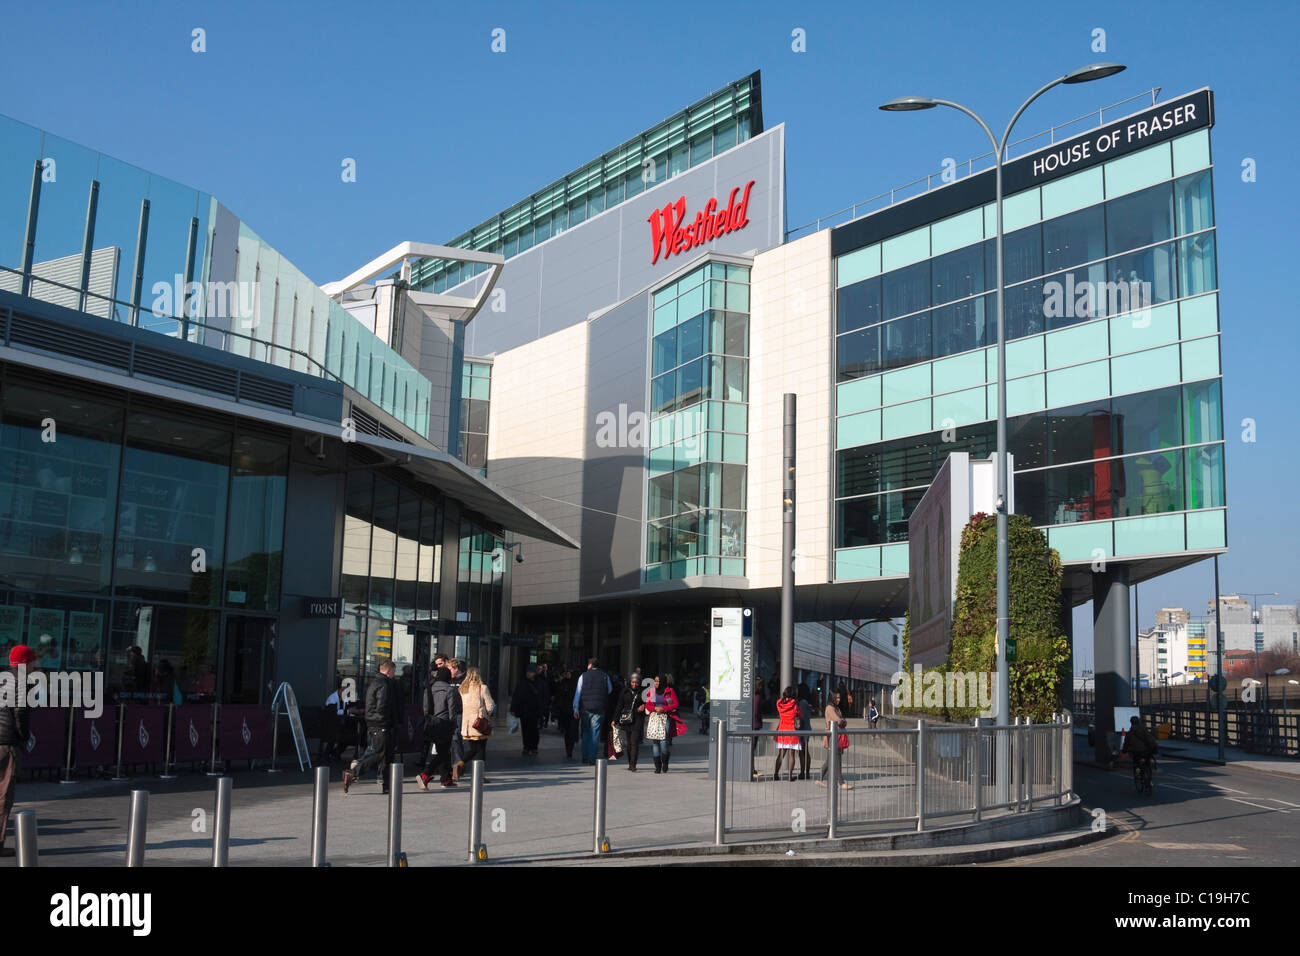 A landscape picture of the Westfield shopping centre in Shepherds Bush, London, UK - Stock Image